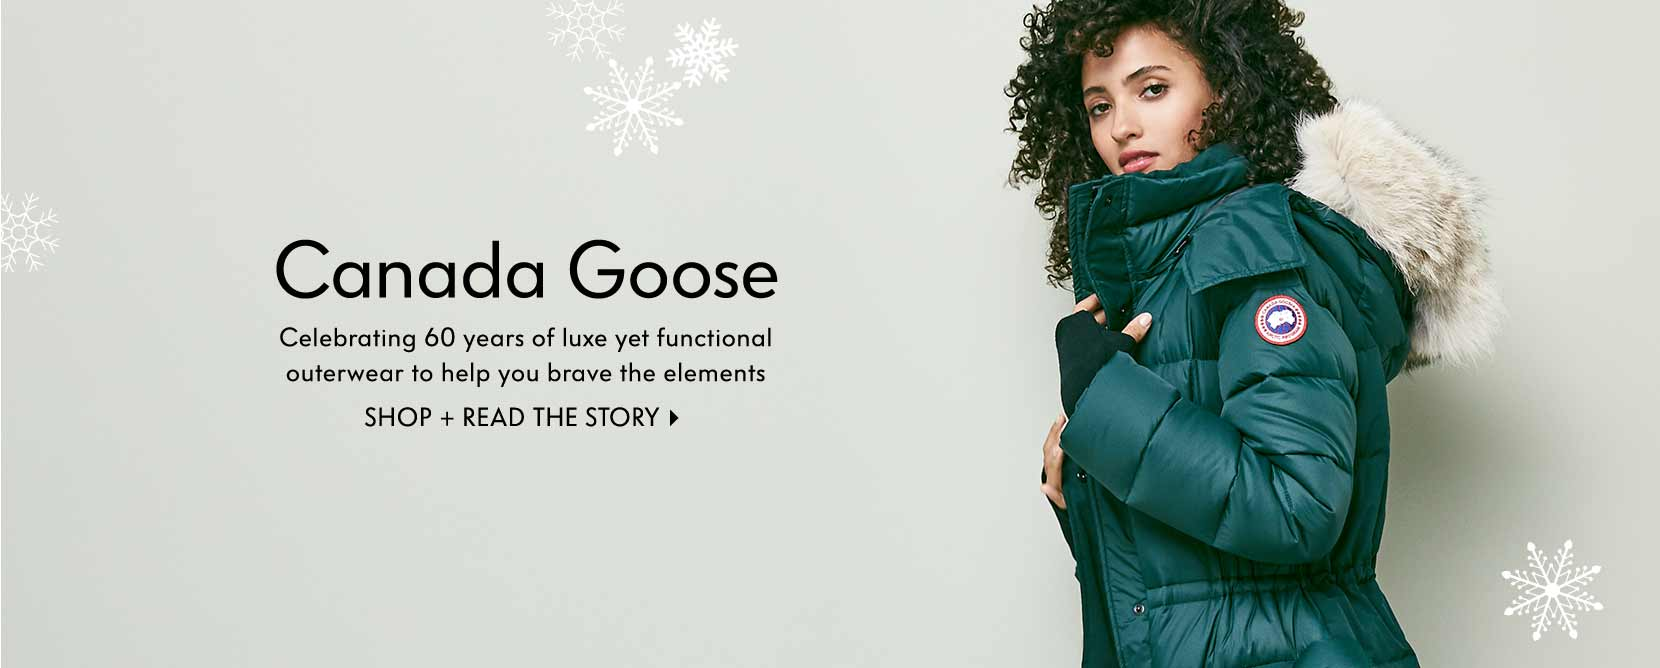 CANADA GOOSE Celebrating 60 years of luxe yet functional outerwear to help you brave the elements